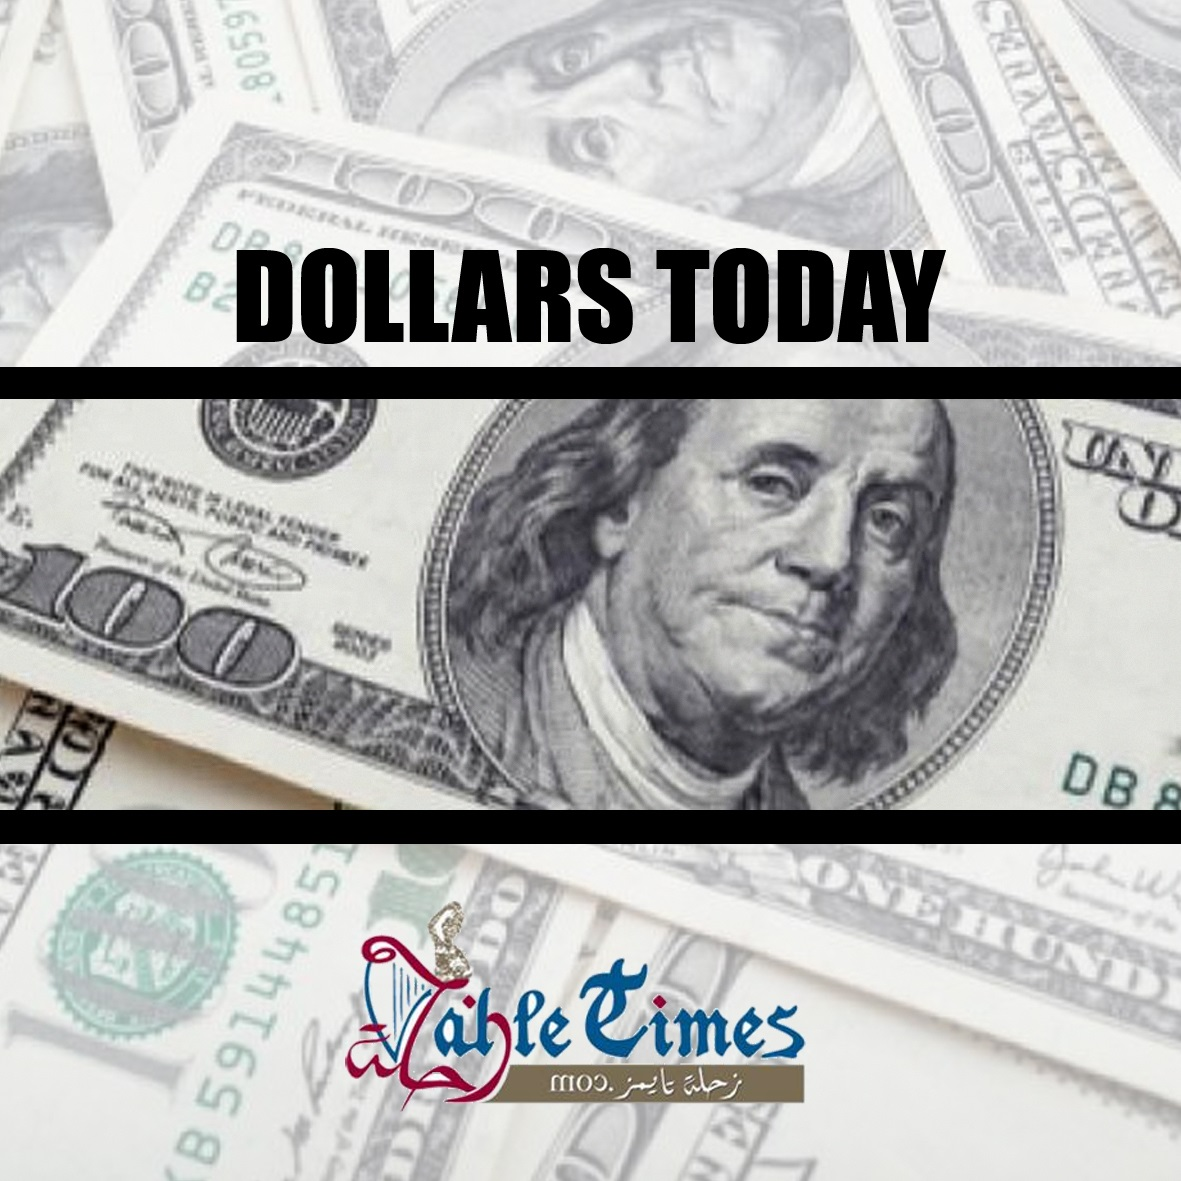 zahletimes_dollar